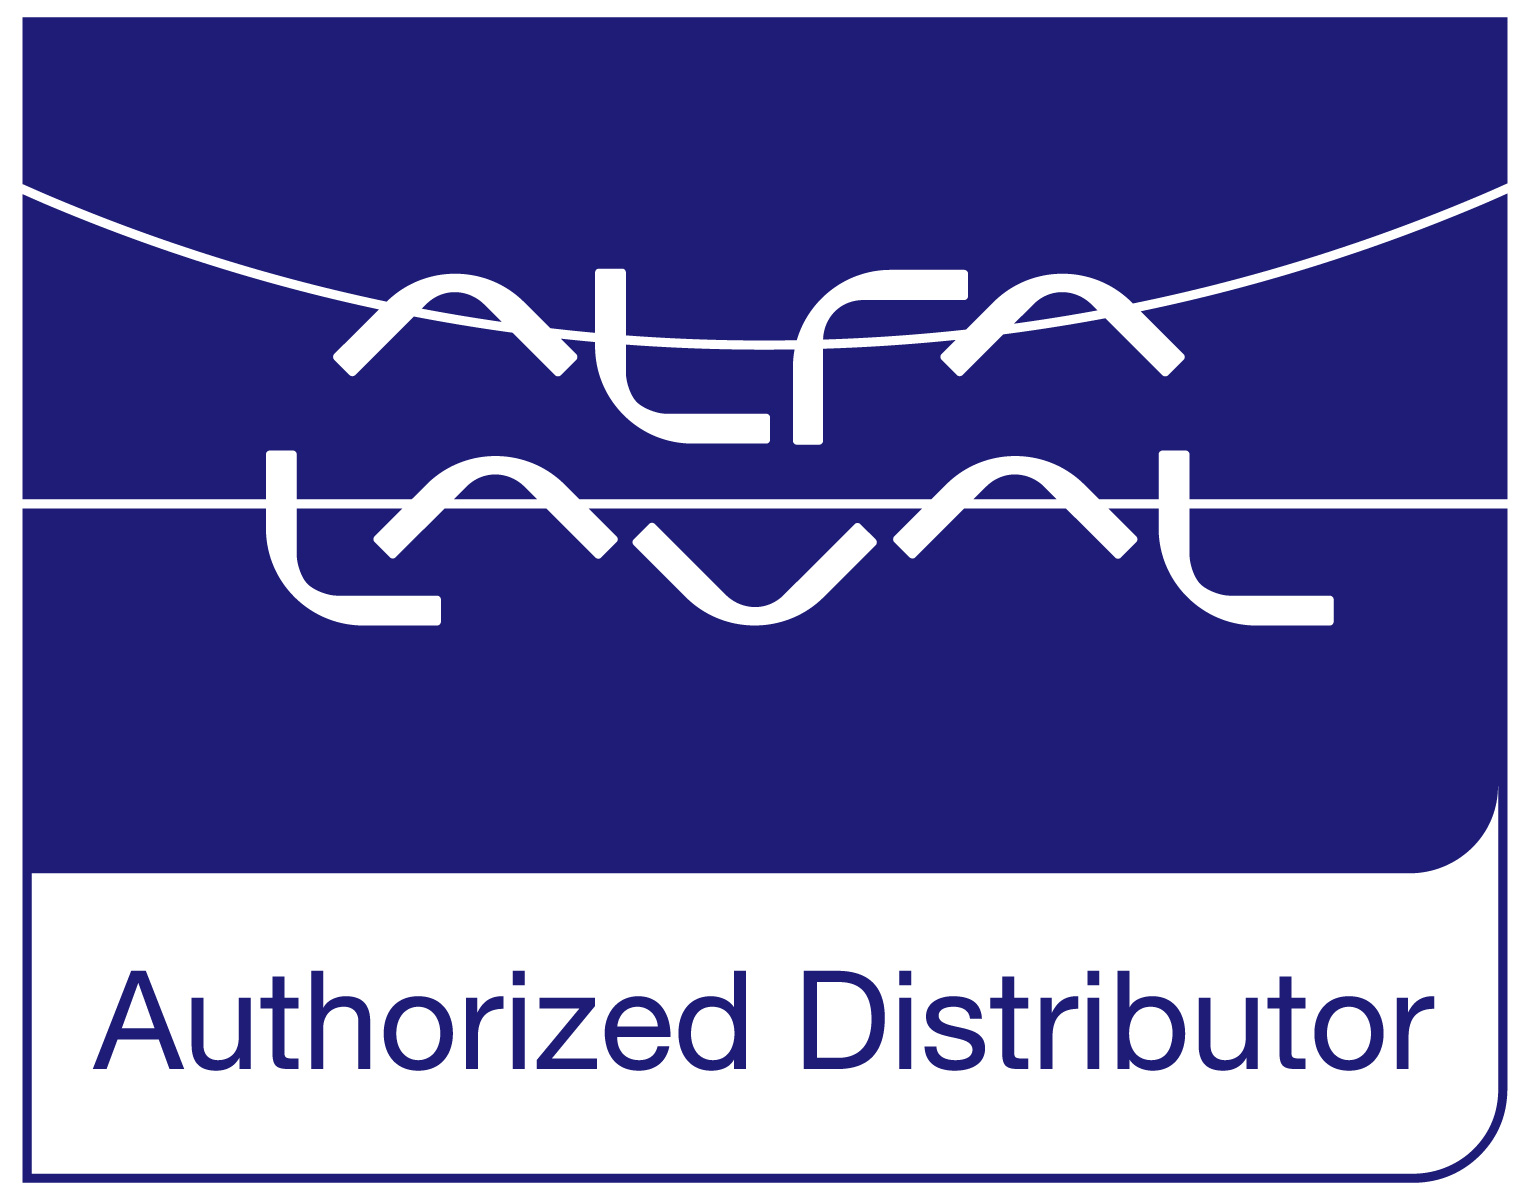 Alfa_Laval_Authorized_Distributor_RGB_web.jpg